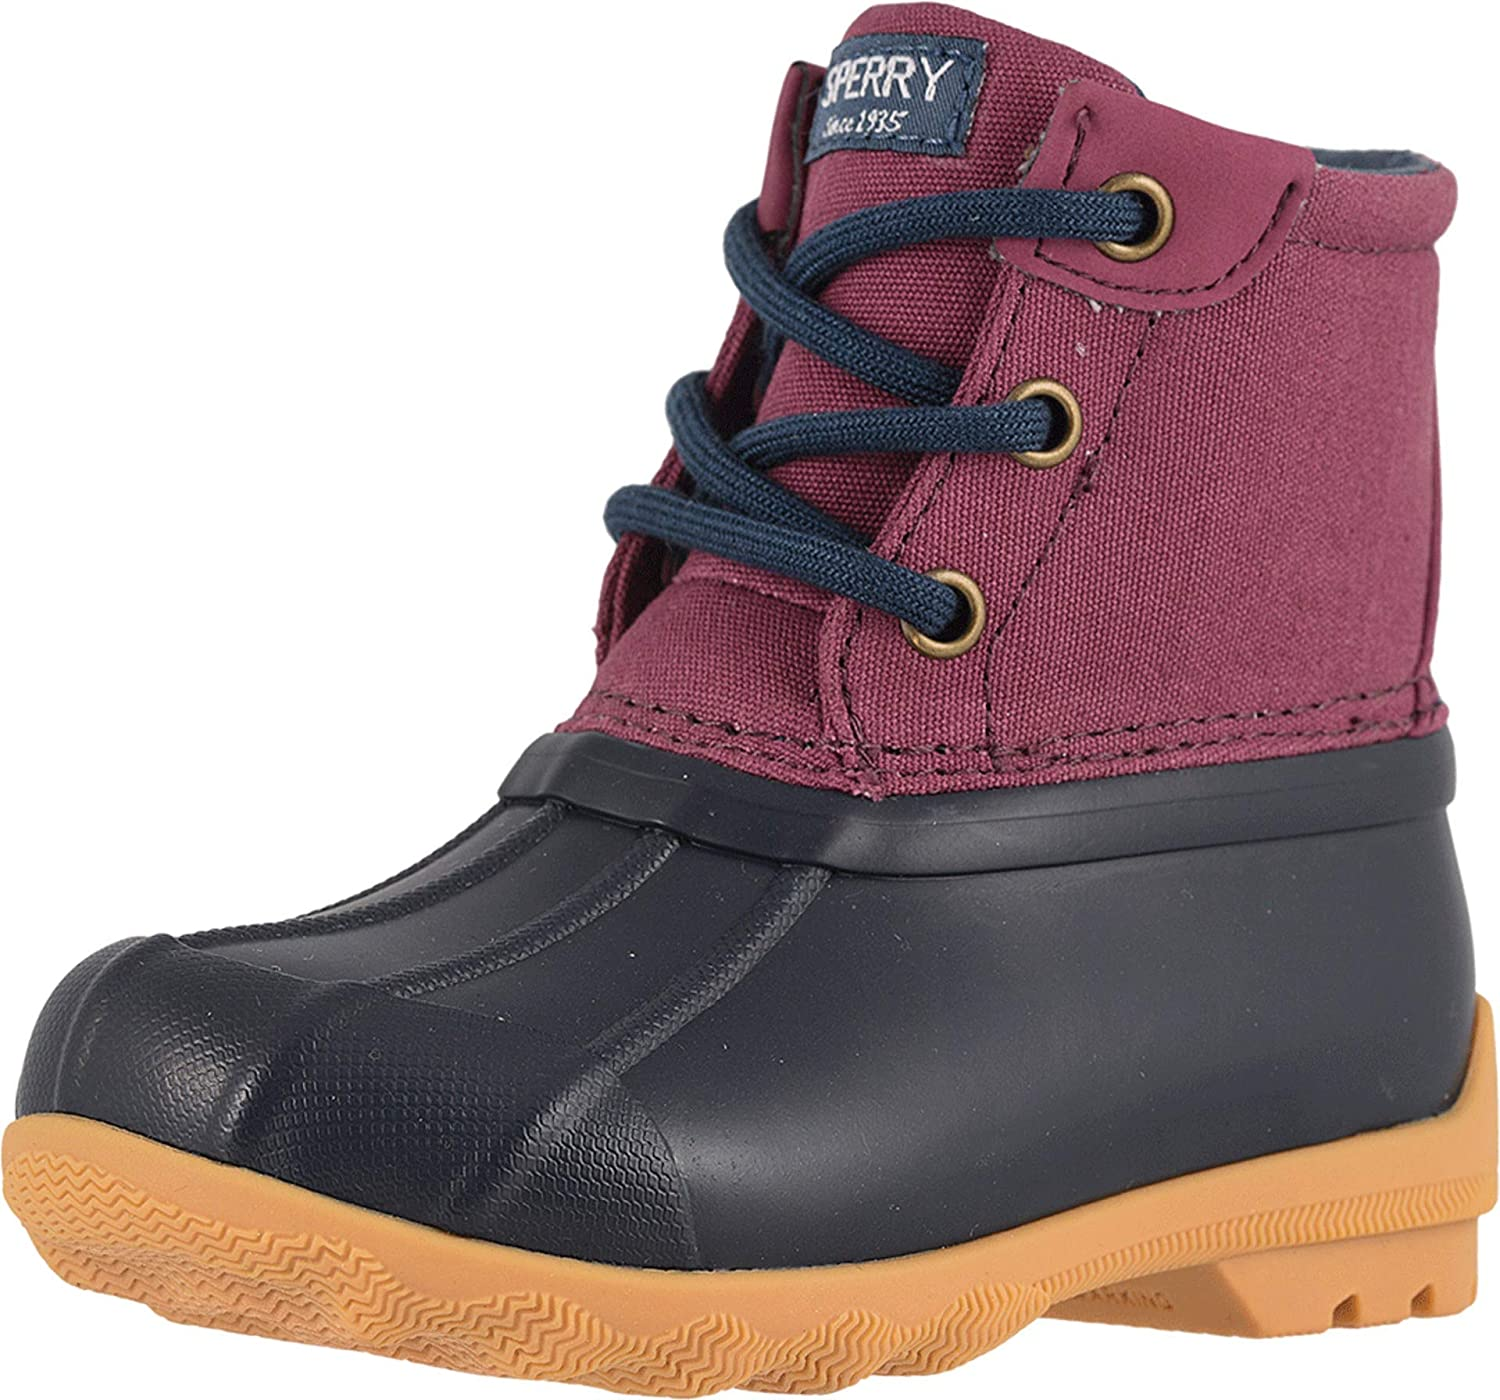 Sperry Top-Sider Kids Port Rain Boot